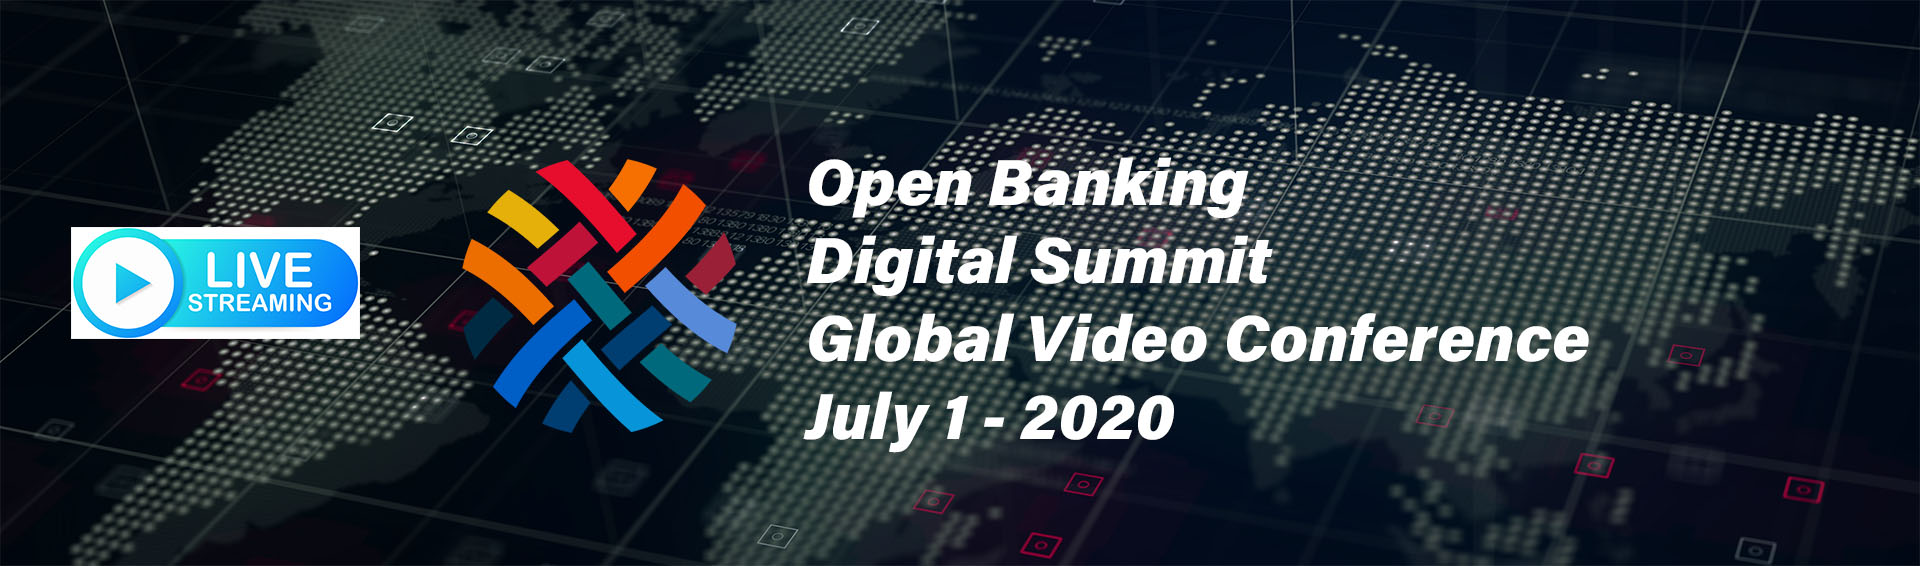 Digital Open Banking Summit